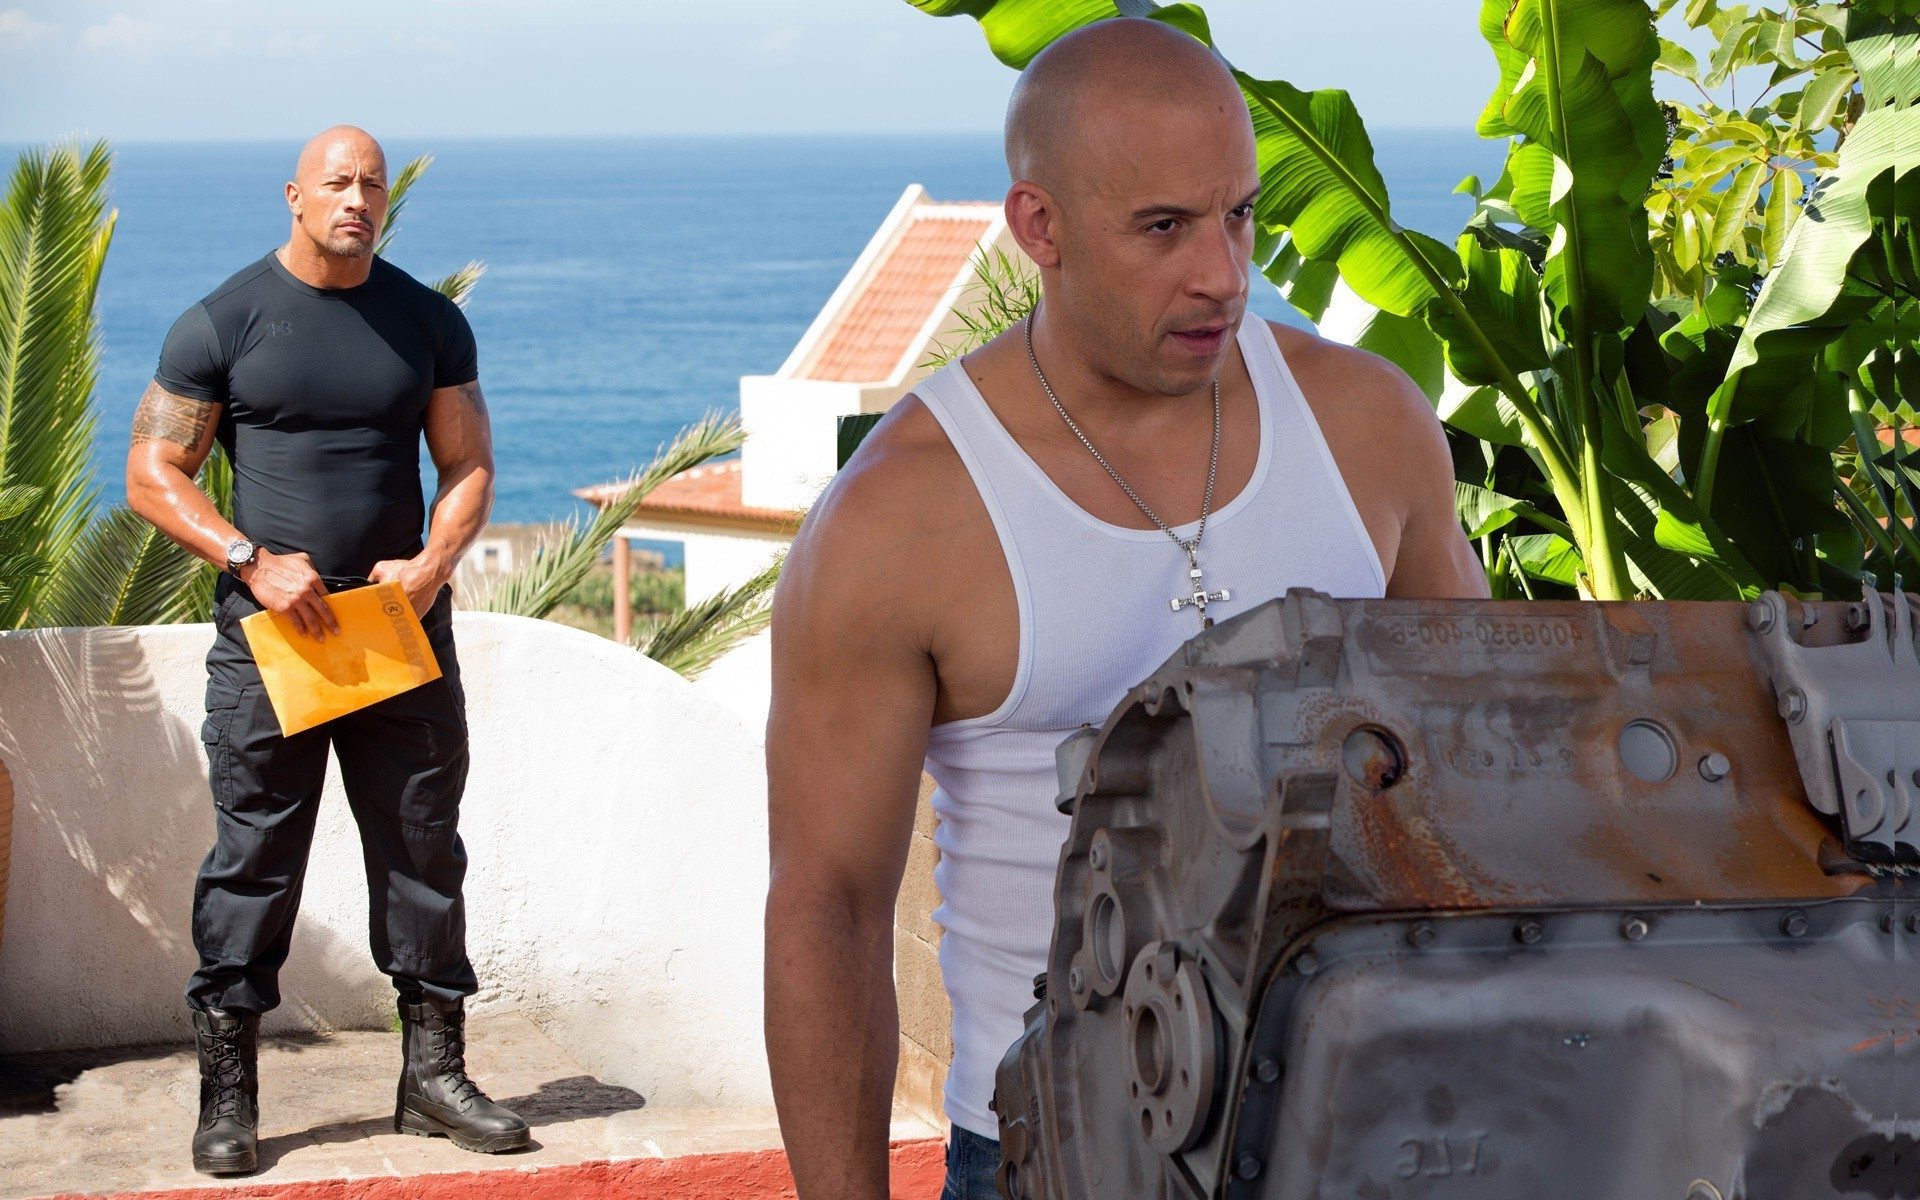 VIN Diesel and Dwayne the Rock Johnson in the movie fast and furious 6